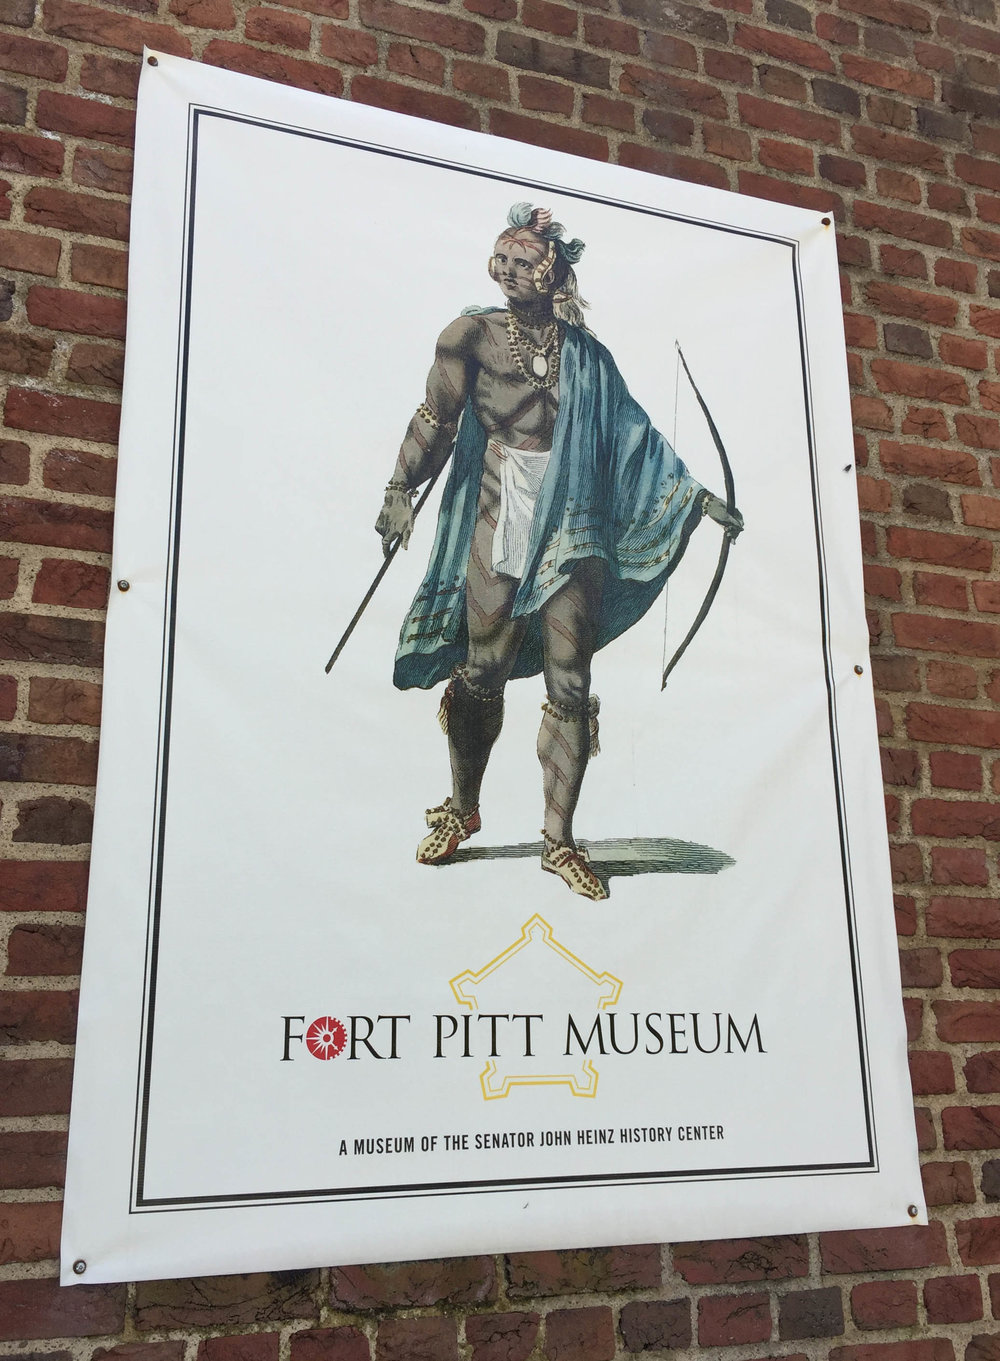 point-museum-sign.jpg